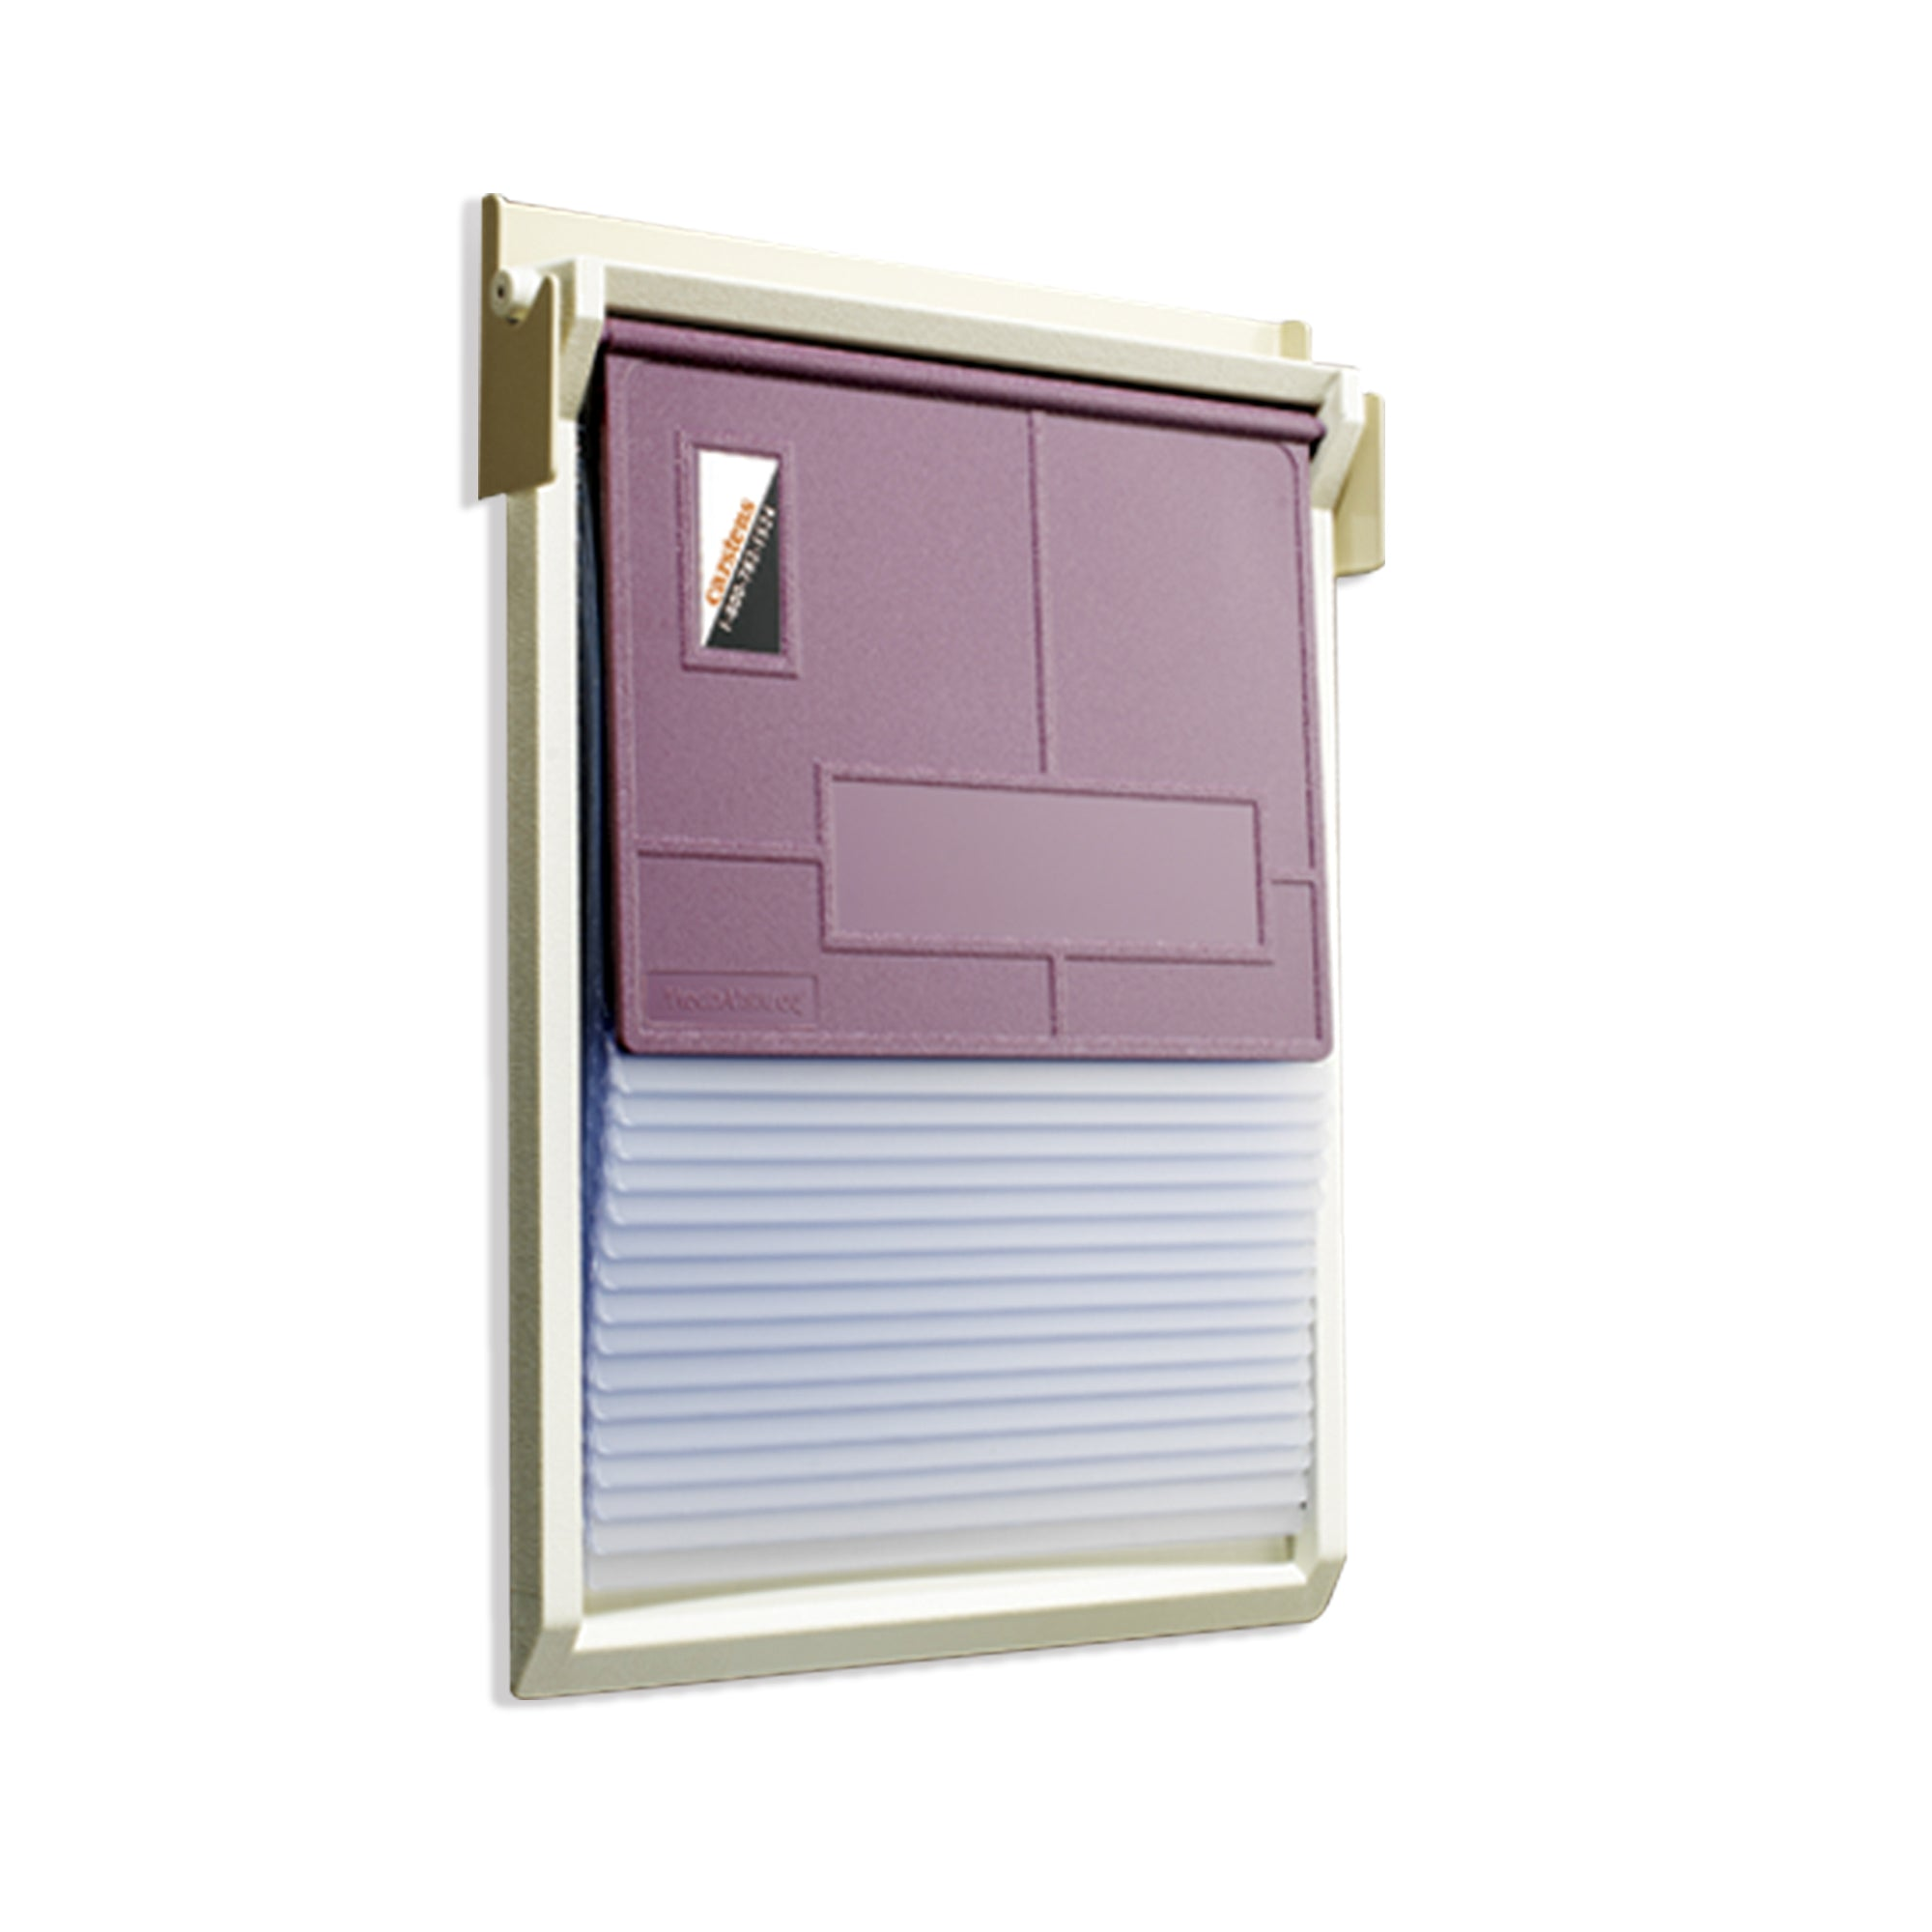 Kardex Visitray Document Filing System Wall Mount